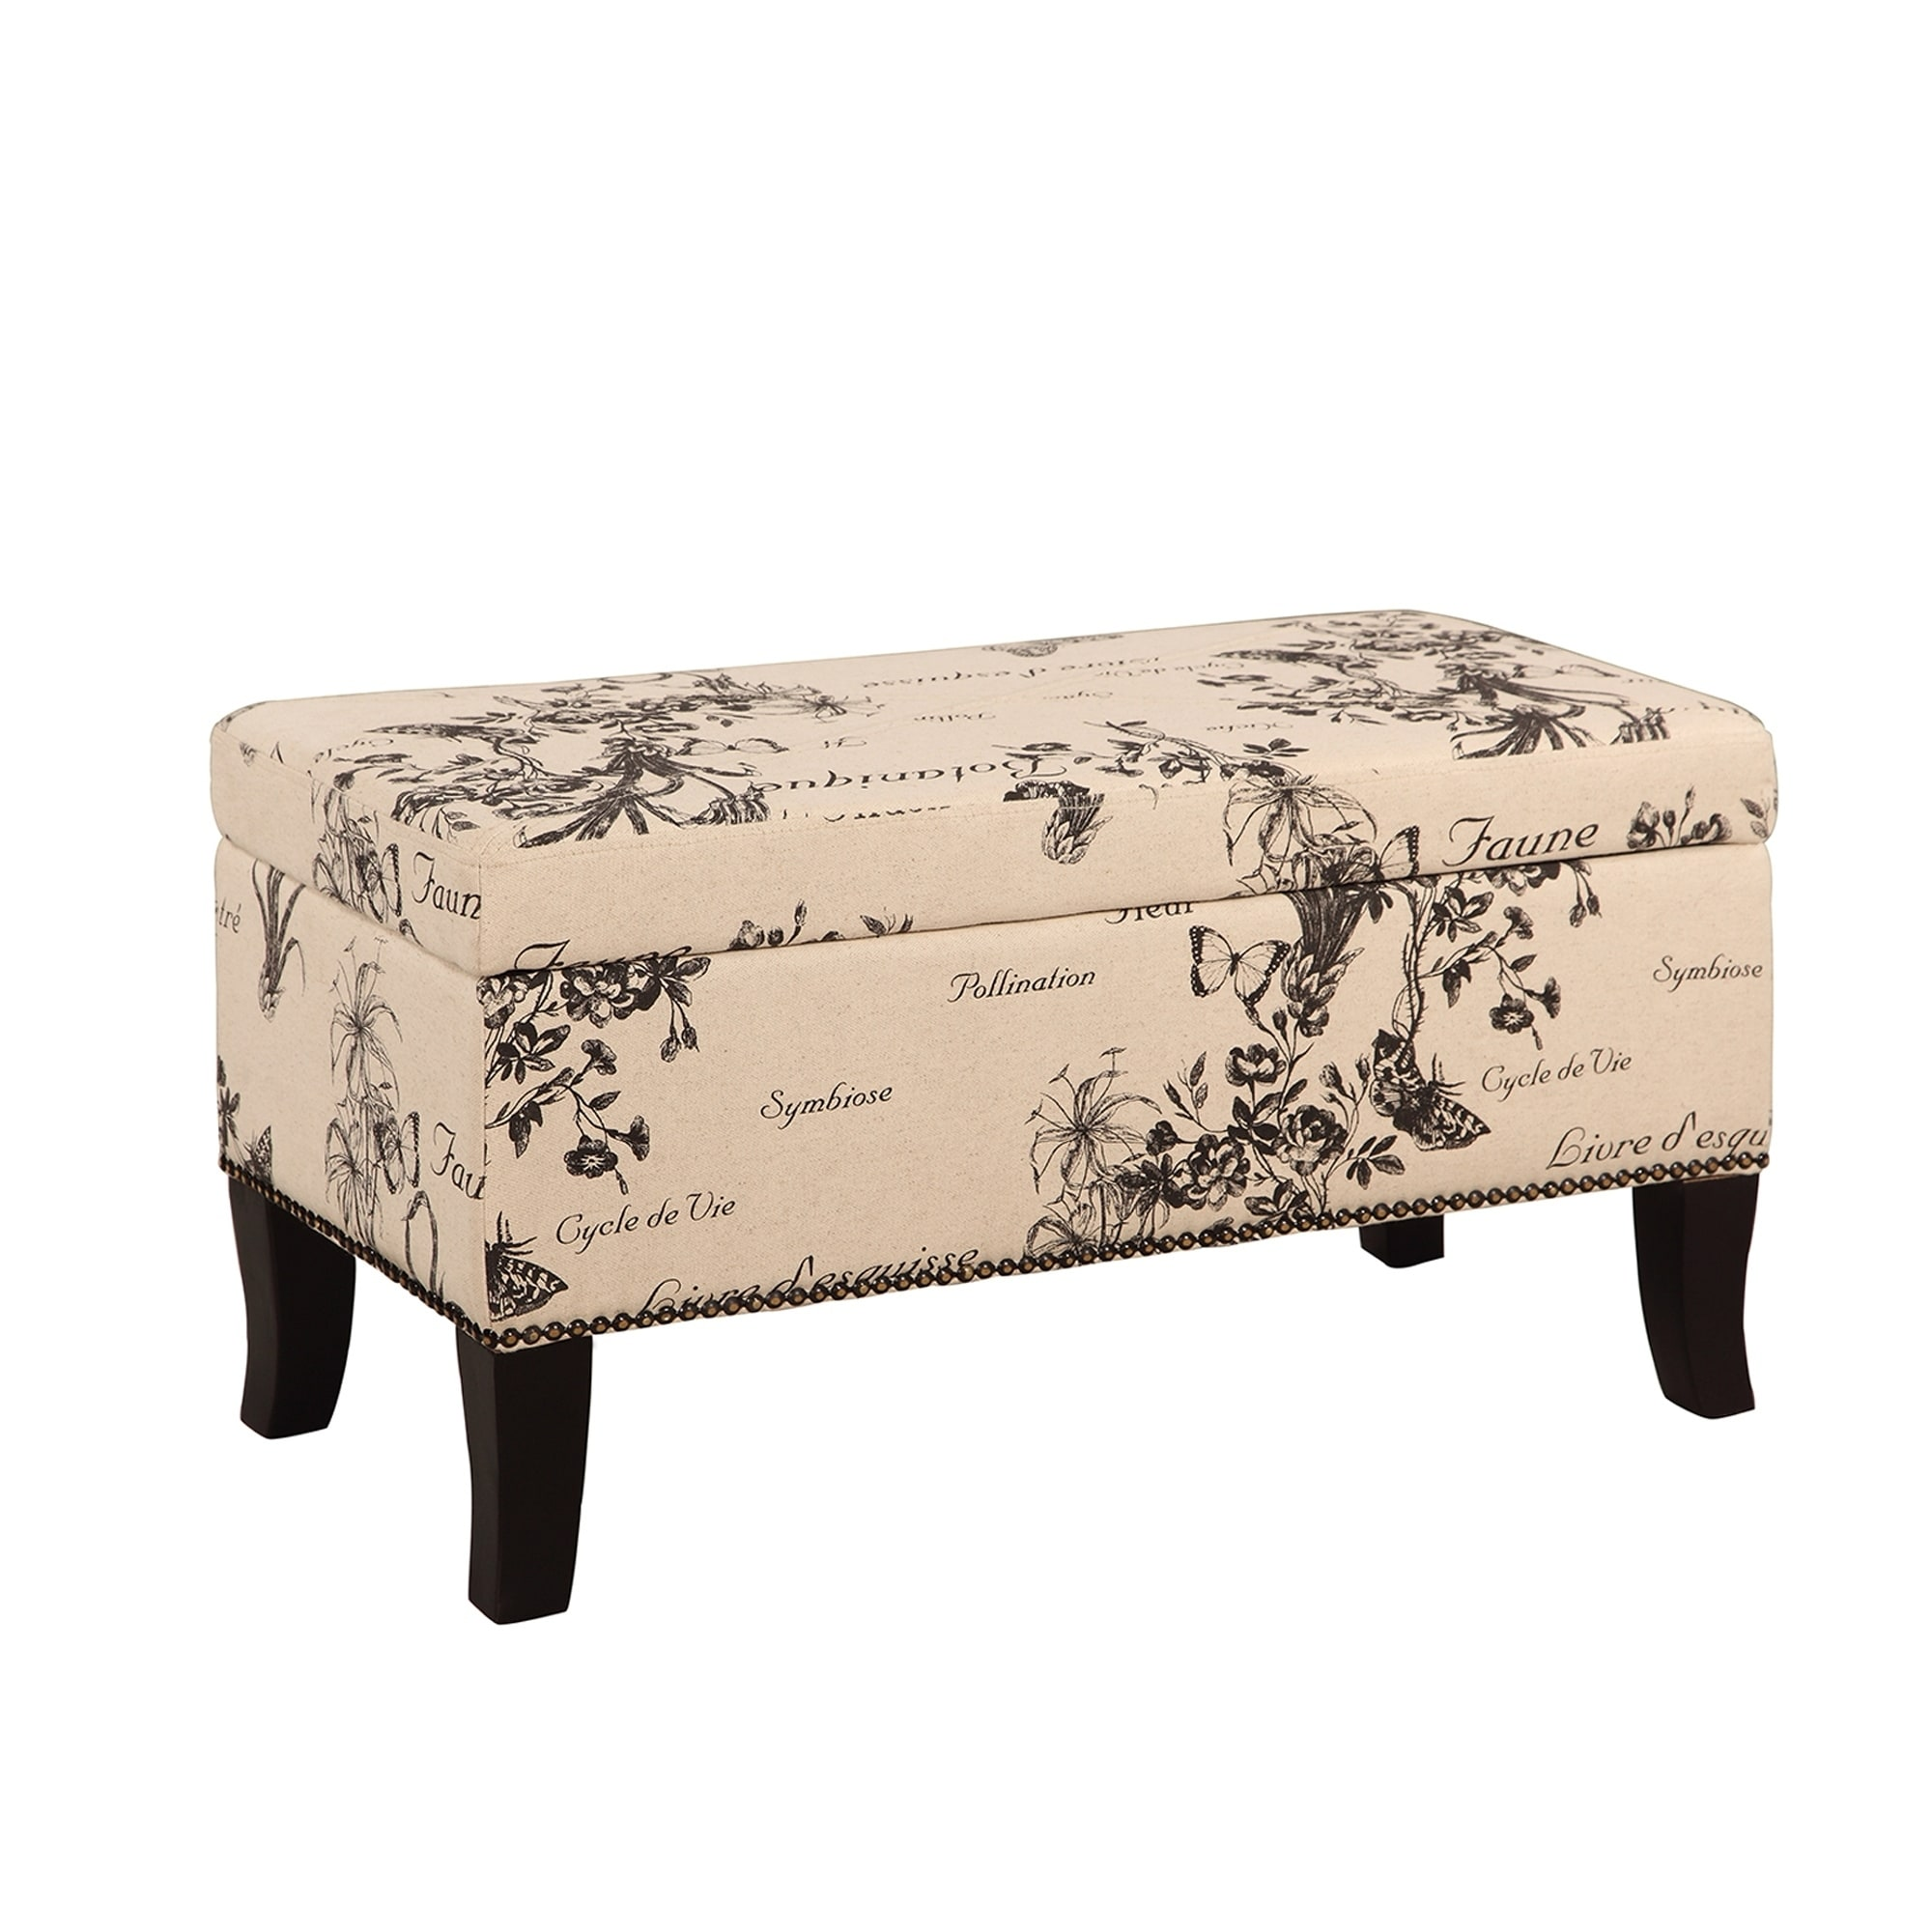 Fabric Upholstered Wooden Ottoman with Botanical Print,Beige and Black